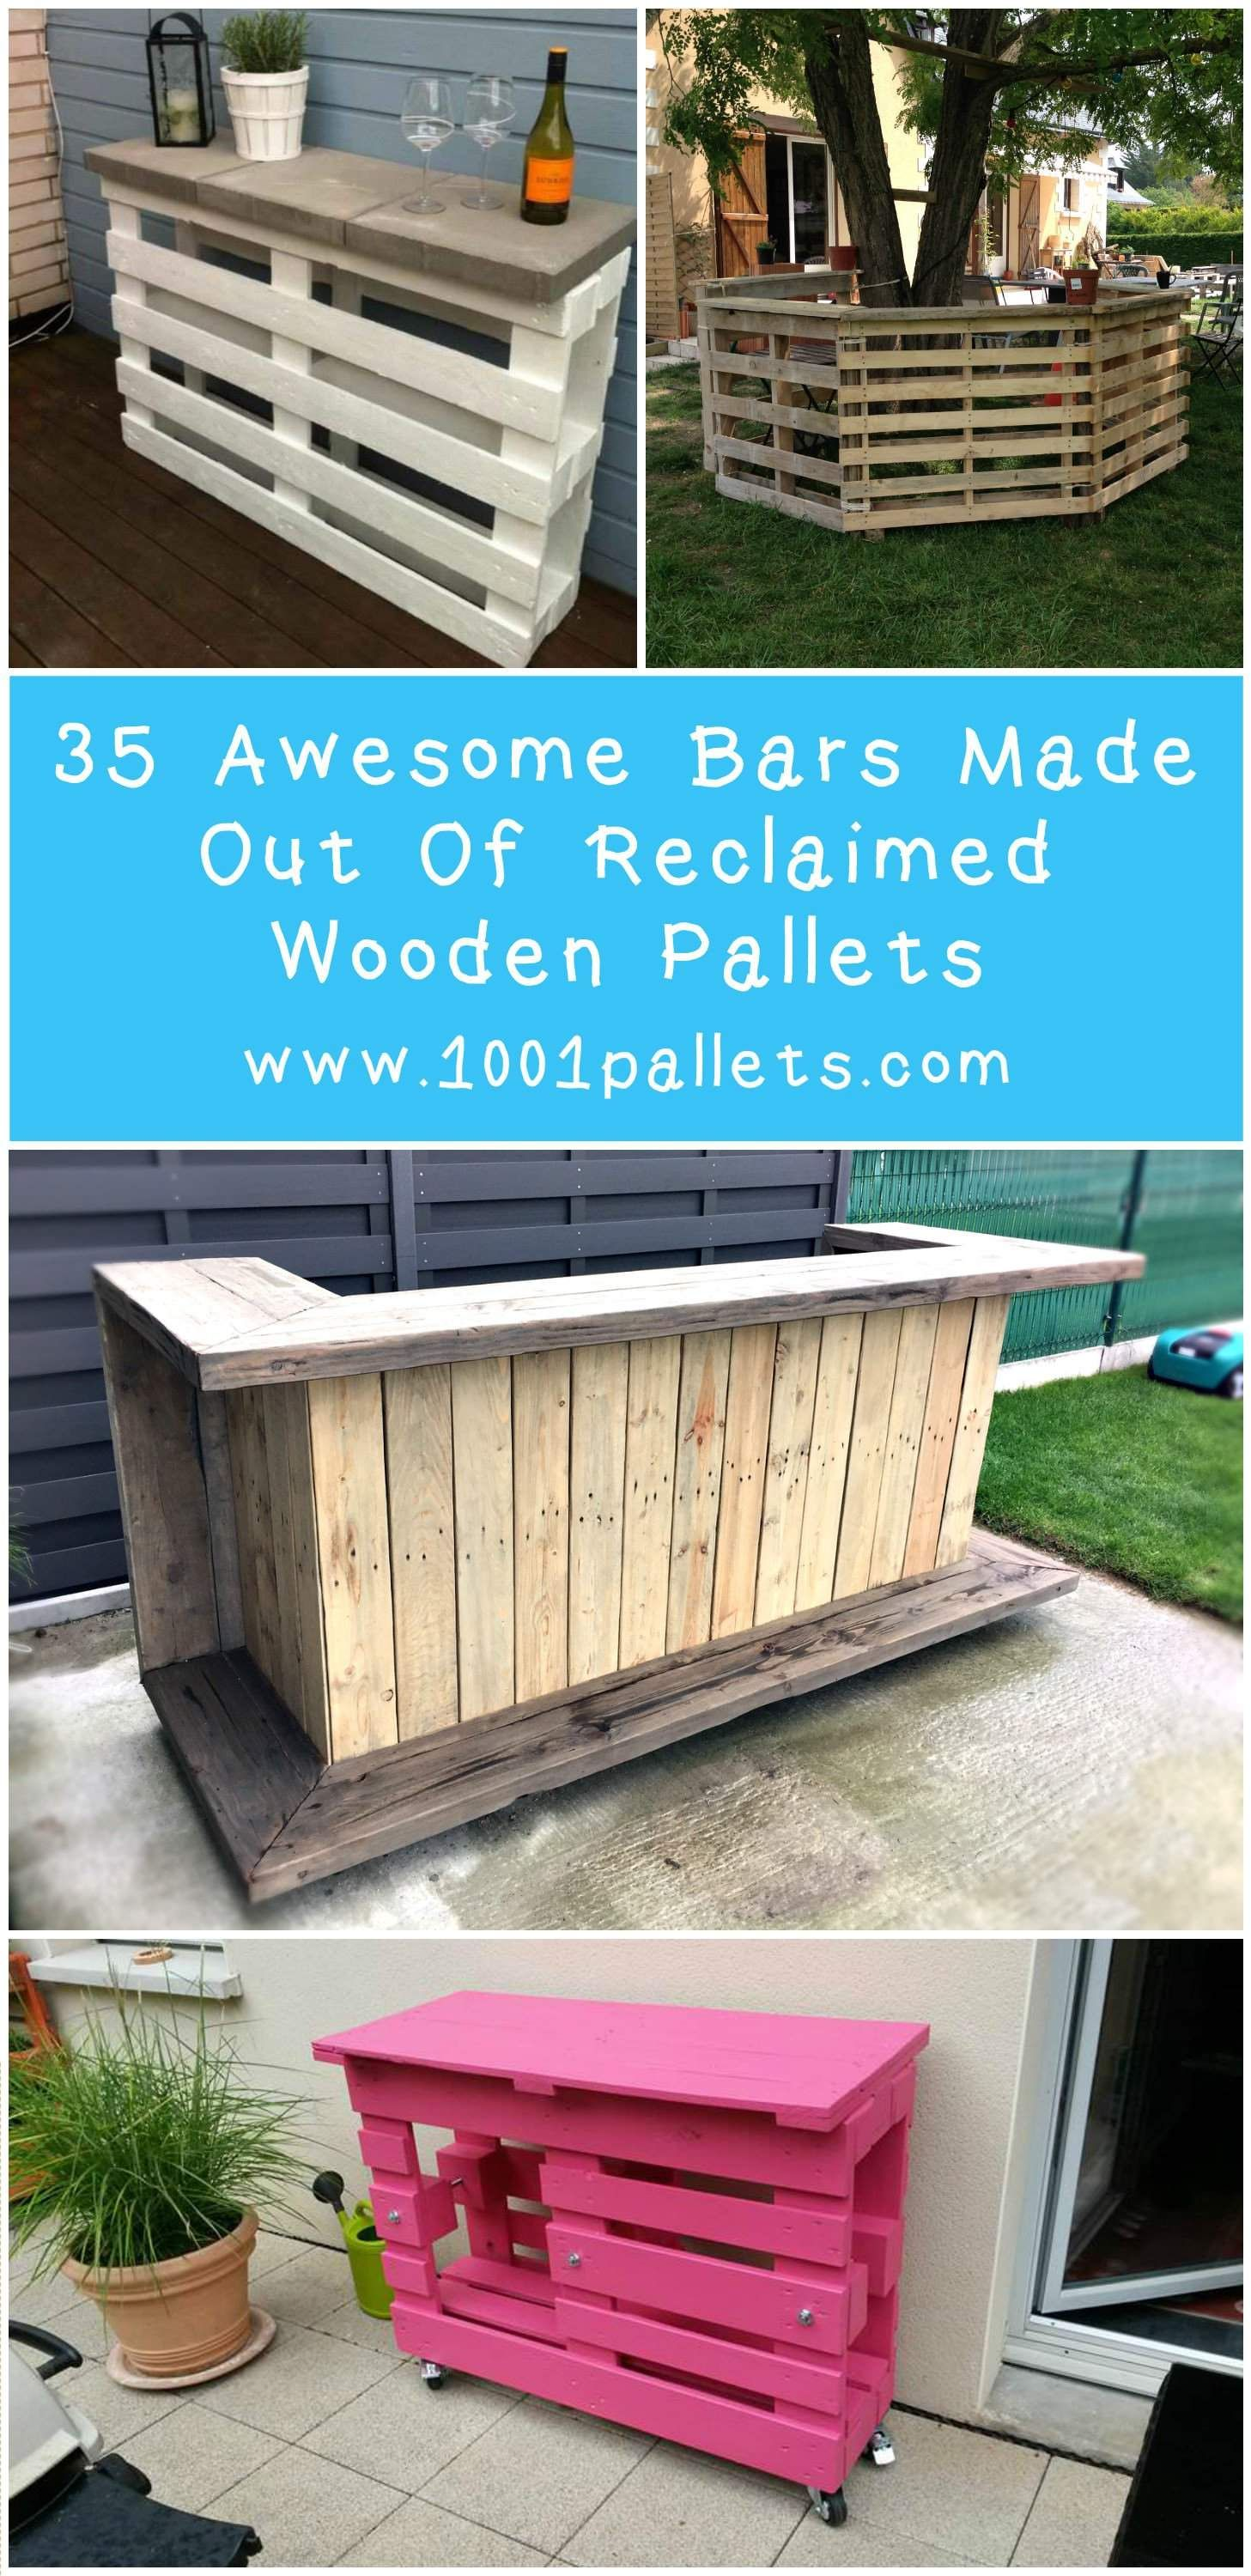 45 Amazing Bars Made From Pallet Wood For Your Inspiration ...